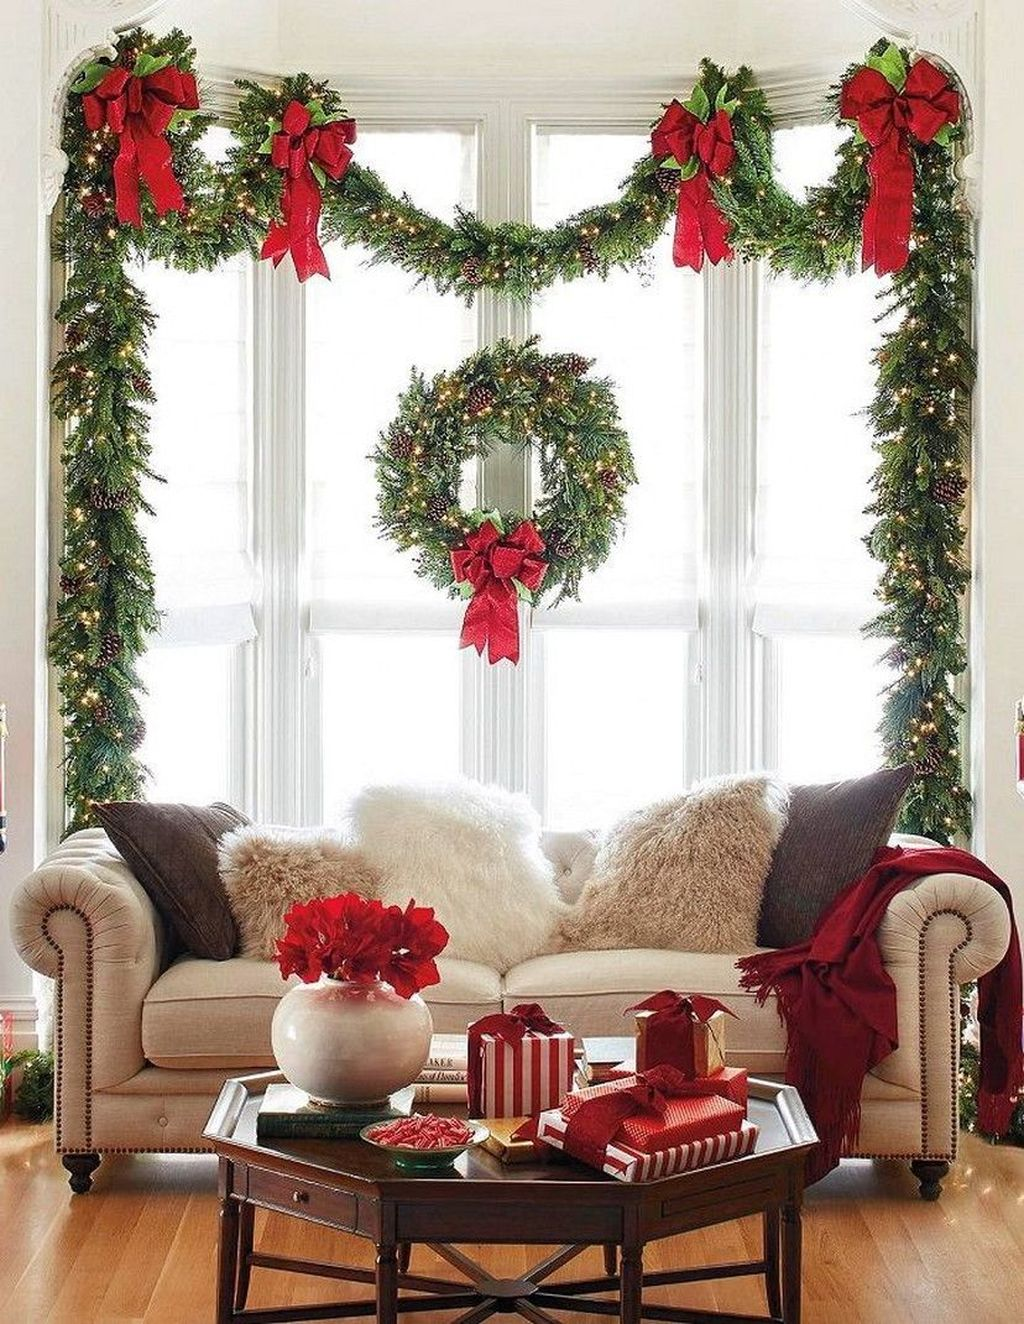 Popular Christmas Theme Apartment Decorations 37